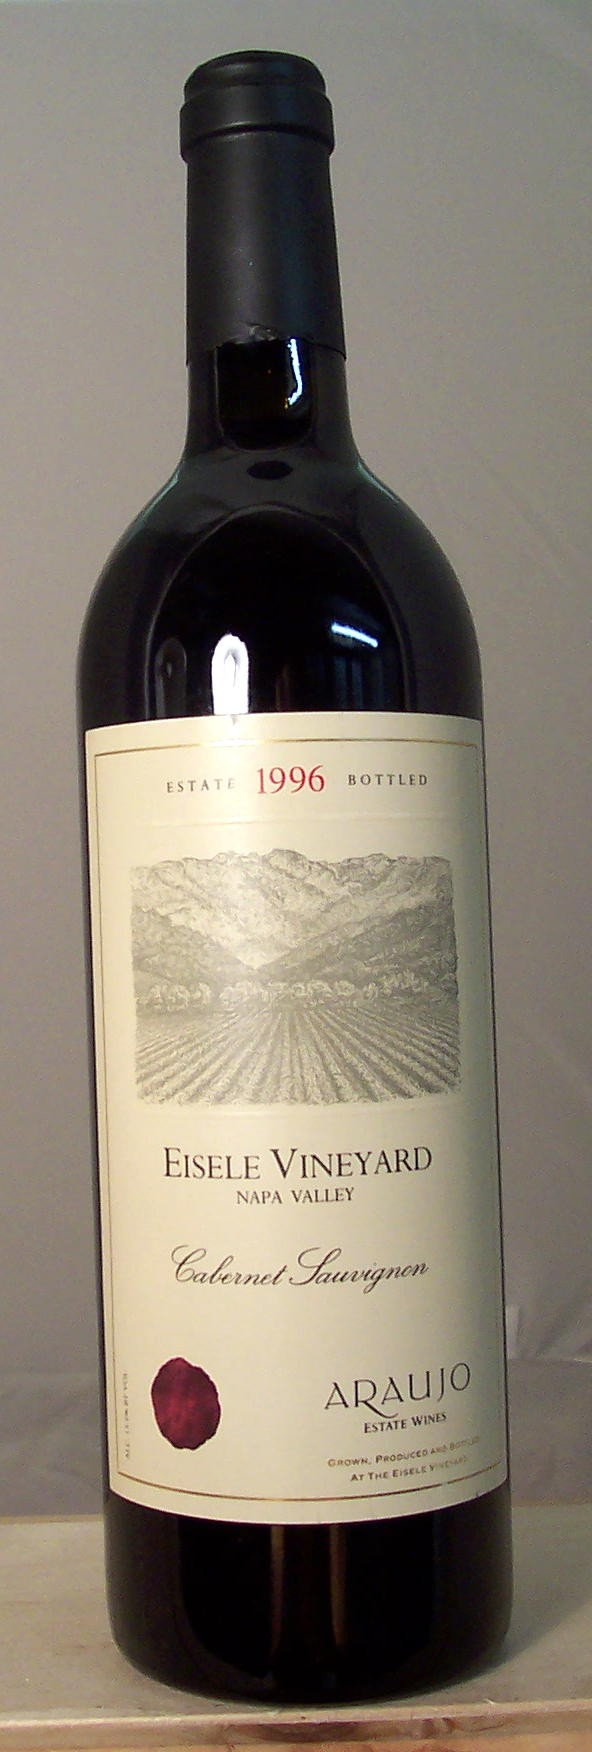 Araujo Estate Wines Cabernet Sauvignon Eisele Vineyard Napa Valley 1996